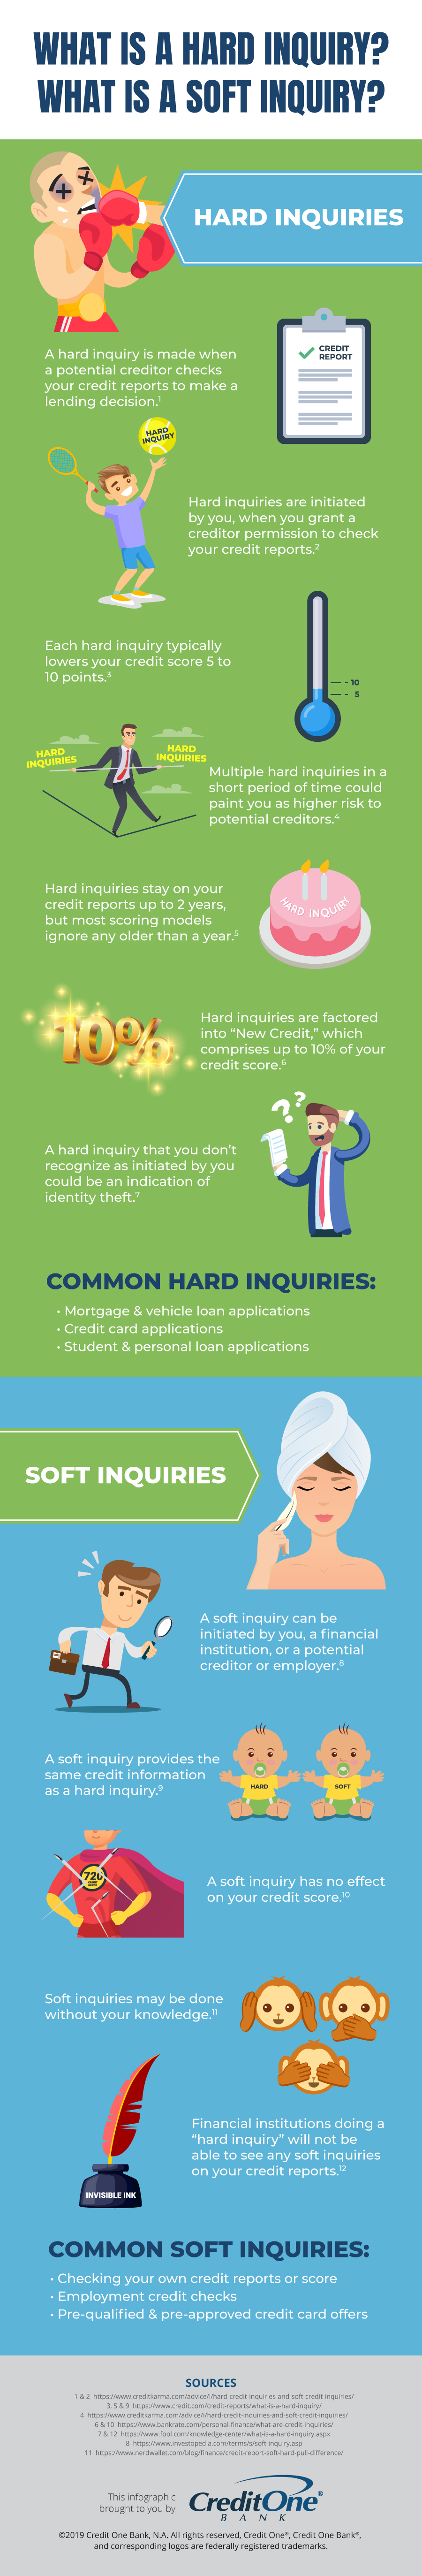 Infographic of hard vs soft inquiries